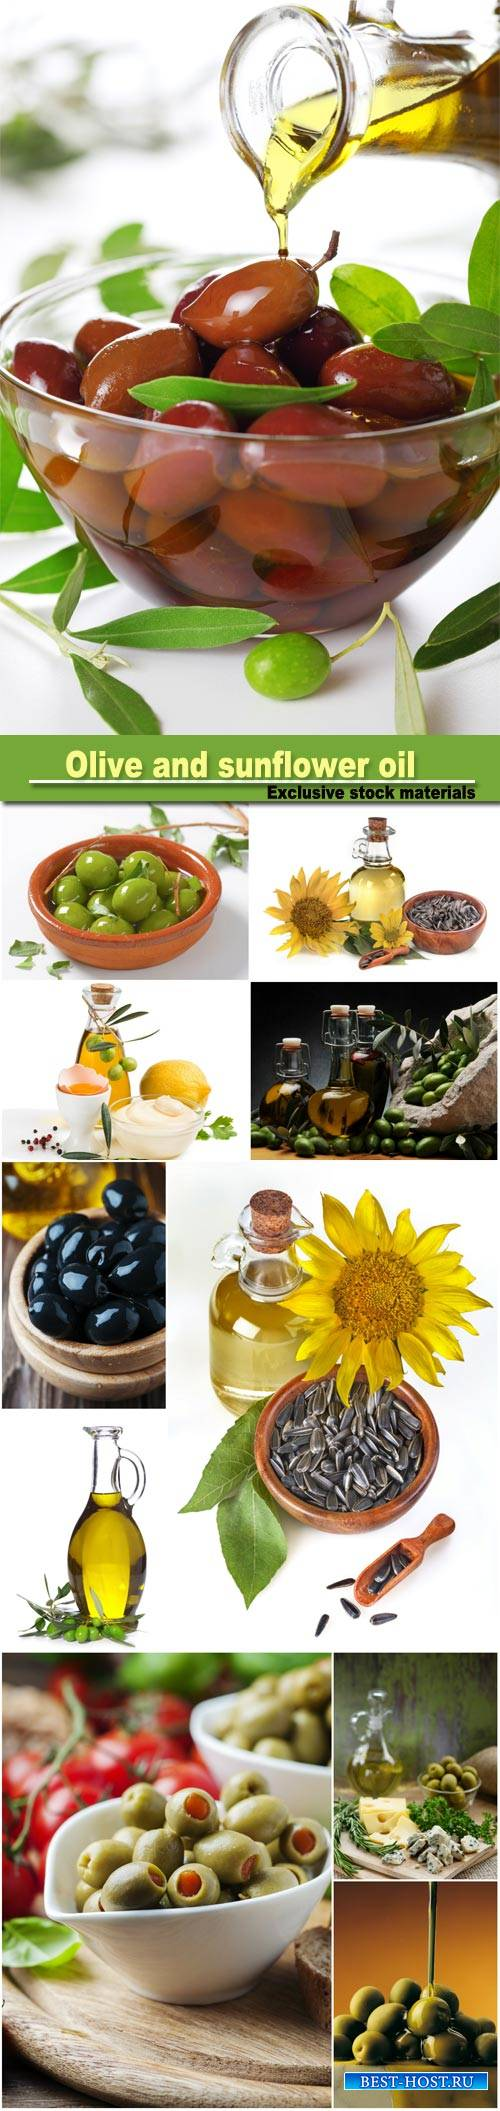 Olive and sunflower oil